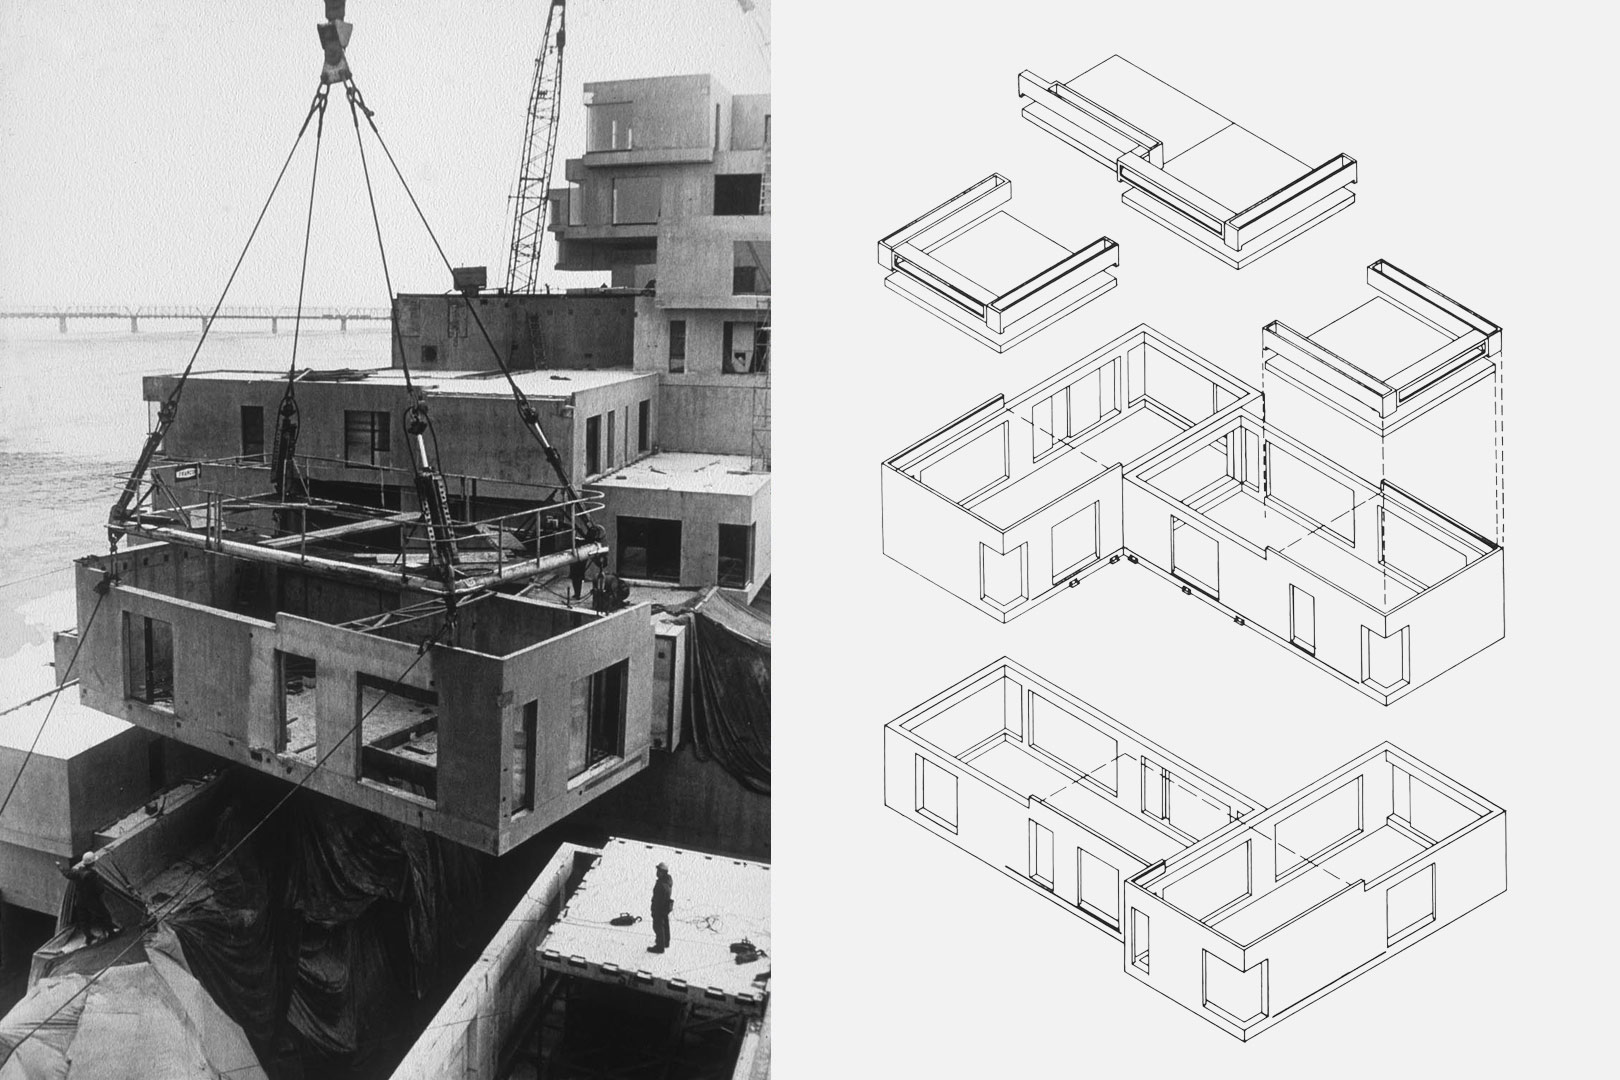 thesis for architecture students